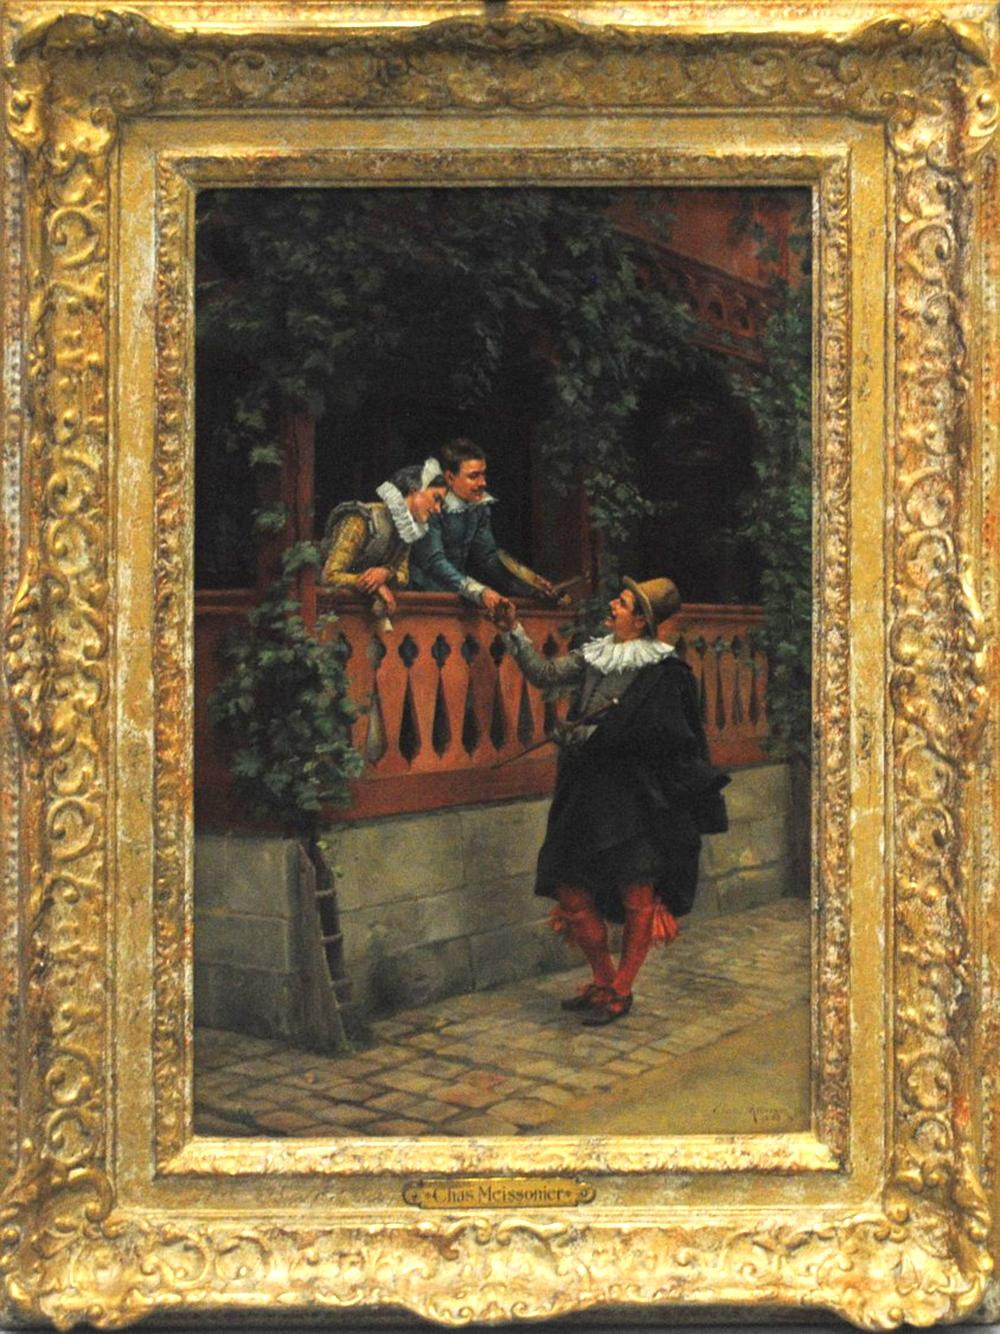 """Charles Meissonier's """"The Painter and The Gentleman"""" Original"""